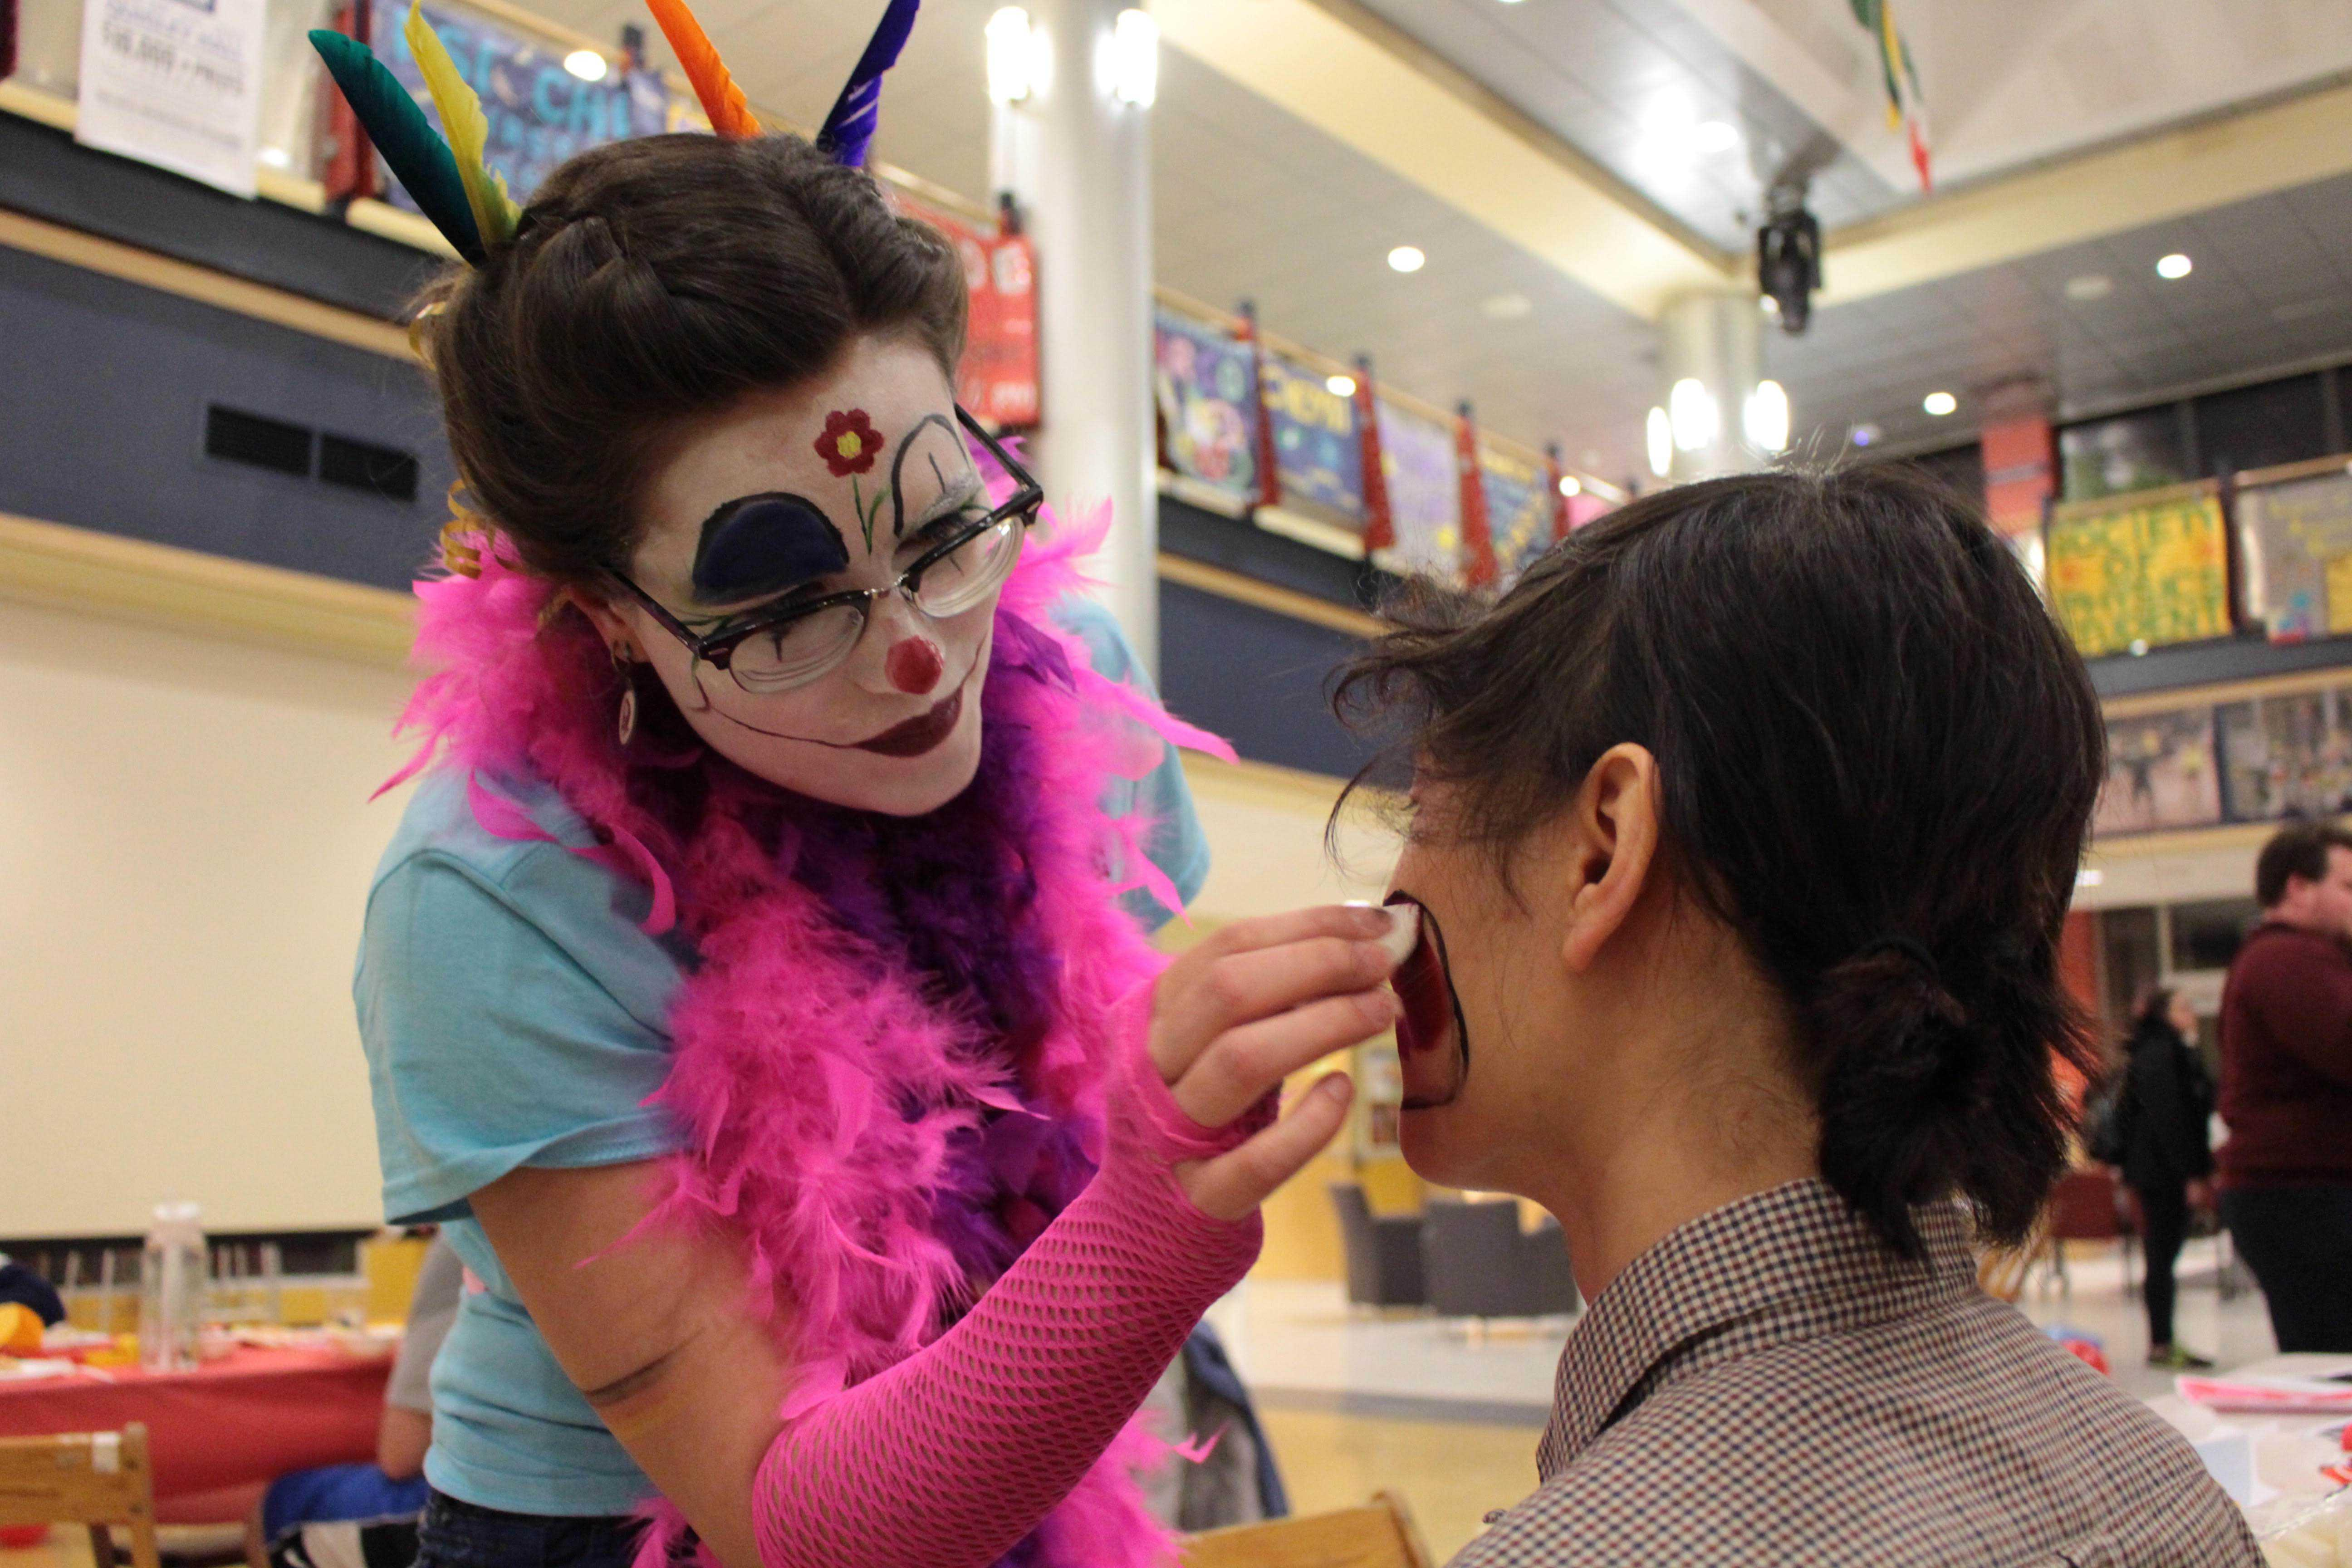 Jasmin Wagner, a German teaching assistant paints the faces of people who came to the Carnival of Culture on Sunday, Feb. 26, 2017.